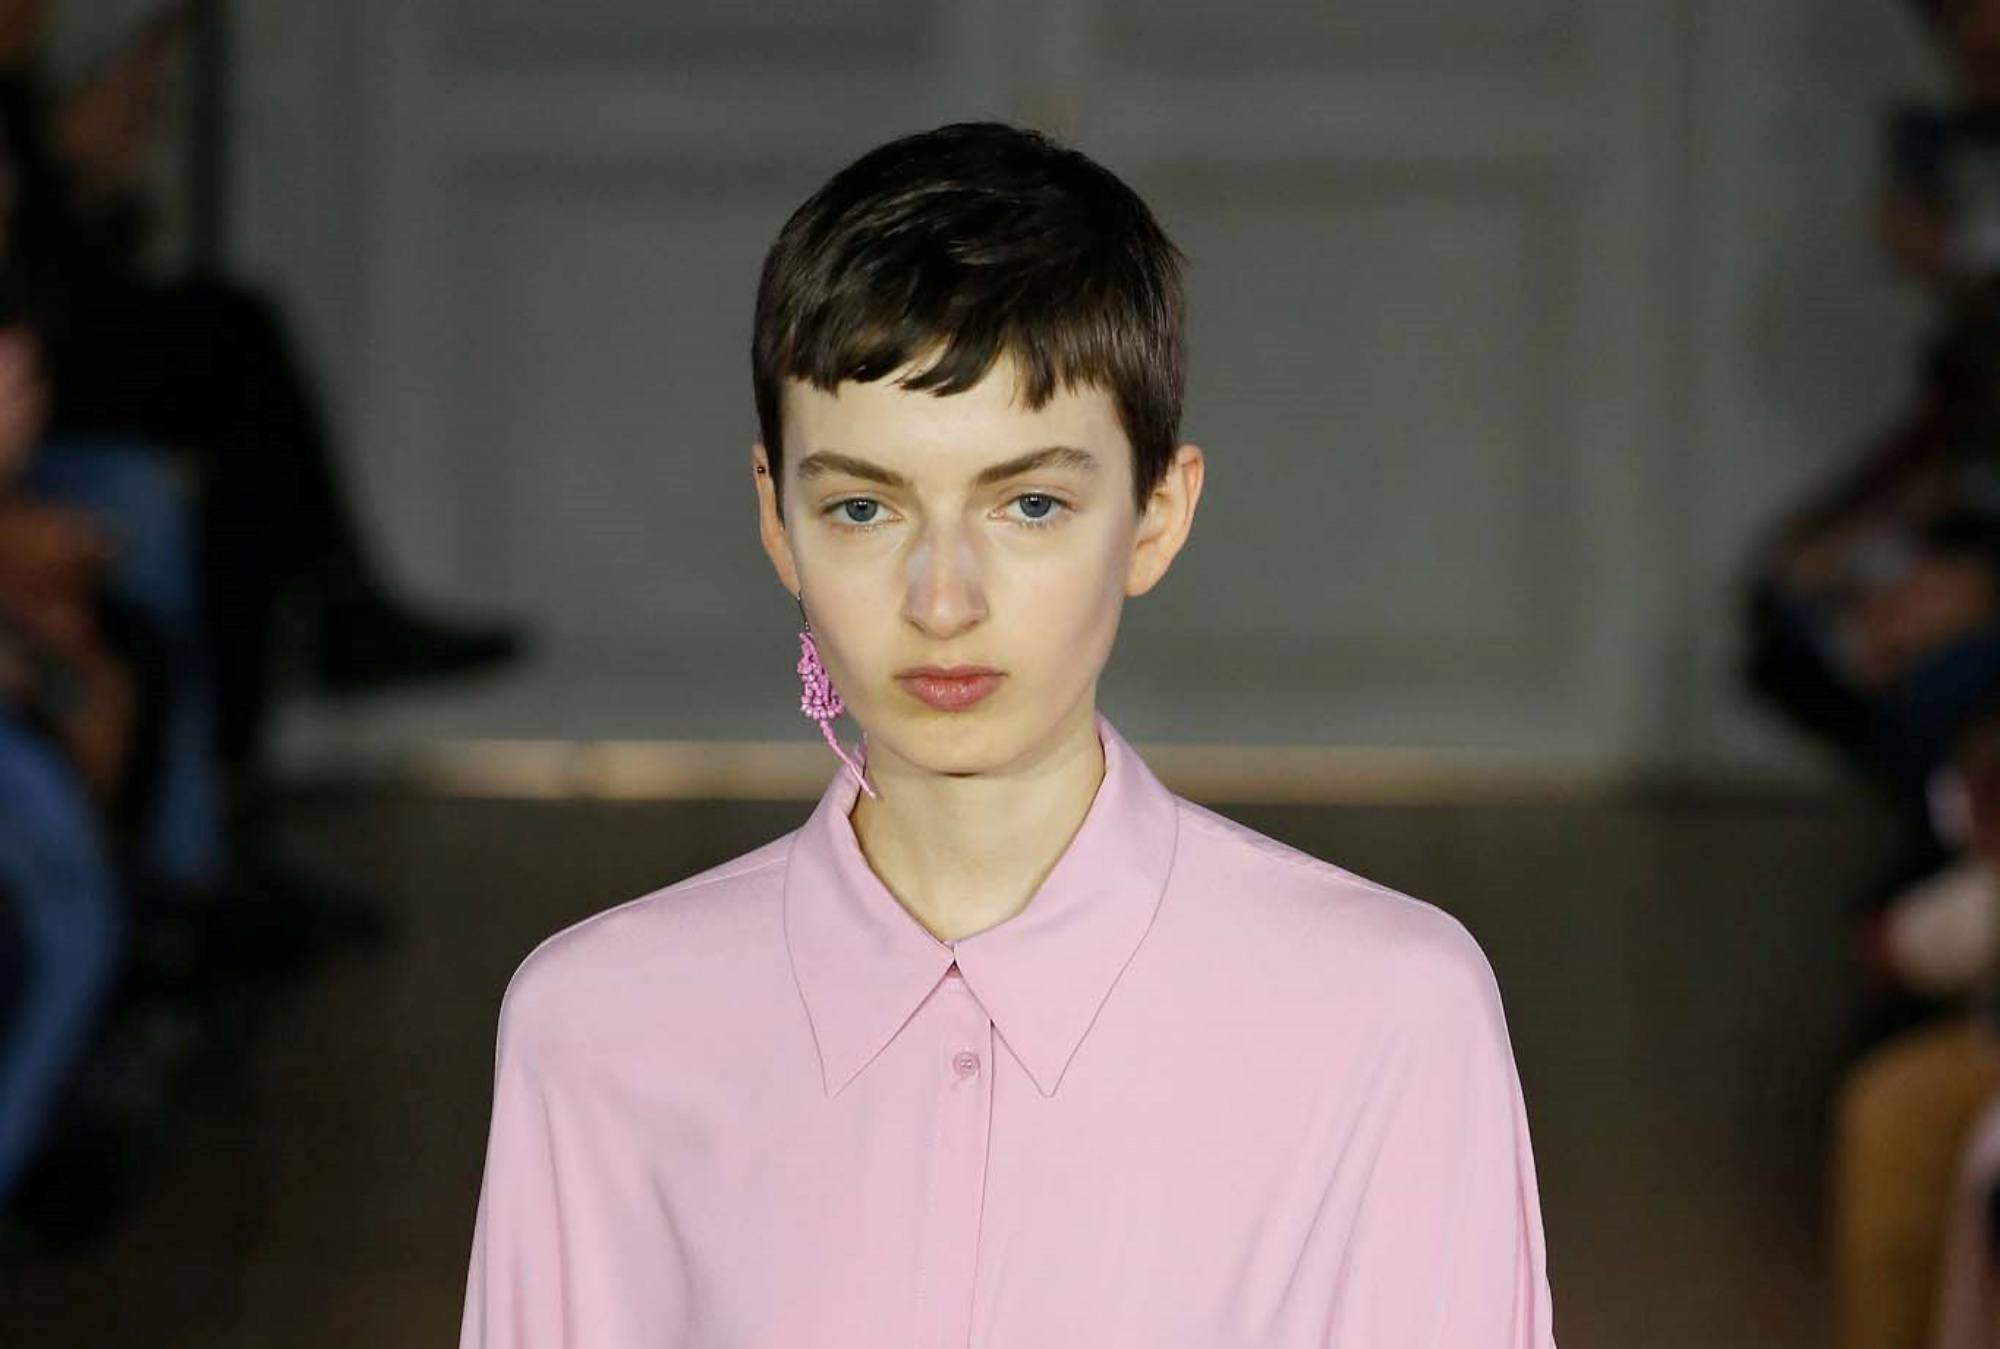 Baby bangs for short hair: Closeup shot of a woman with short dark hair in pixie cut with baby bangs wearing a pink top